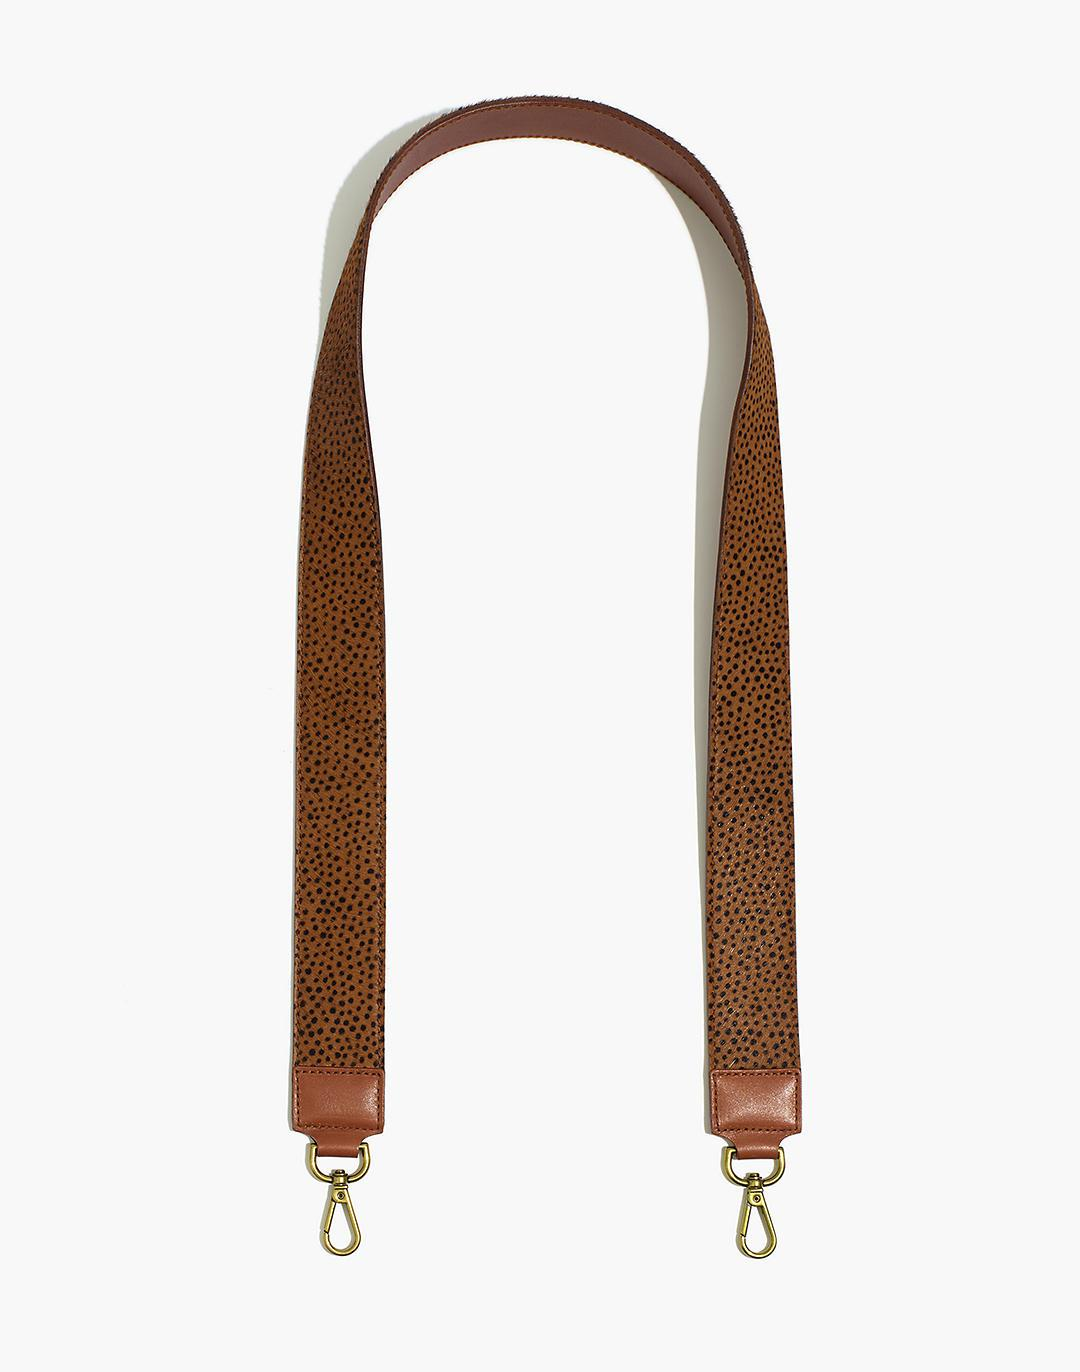 The Crossbody Bag Strap: Spotted Calf Hair Edition